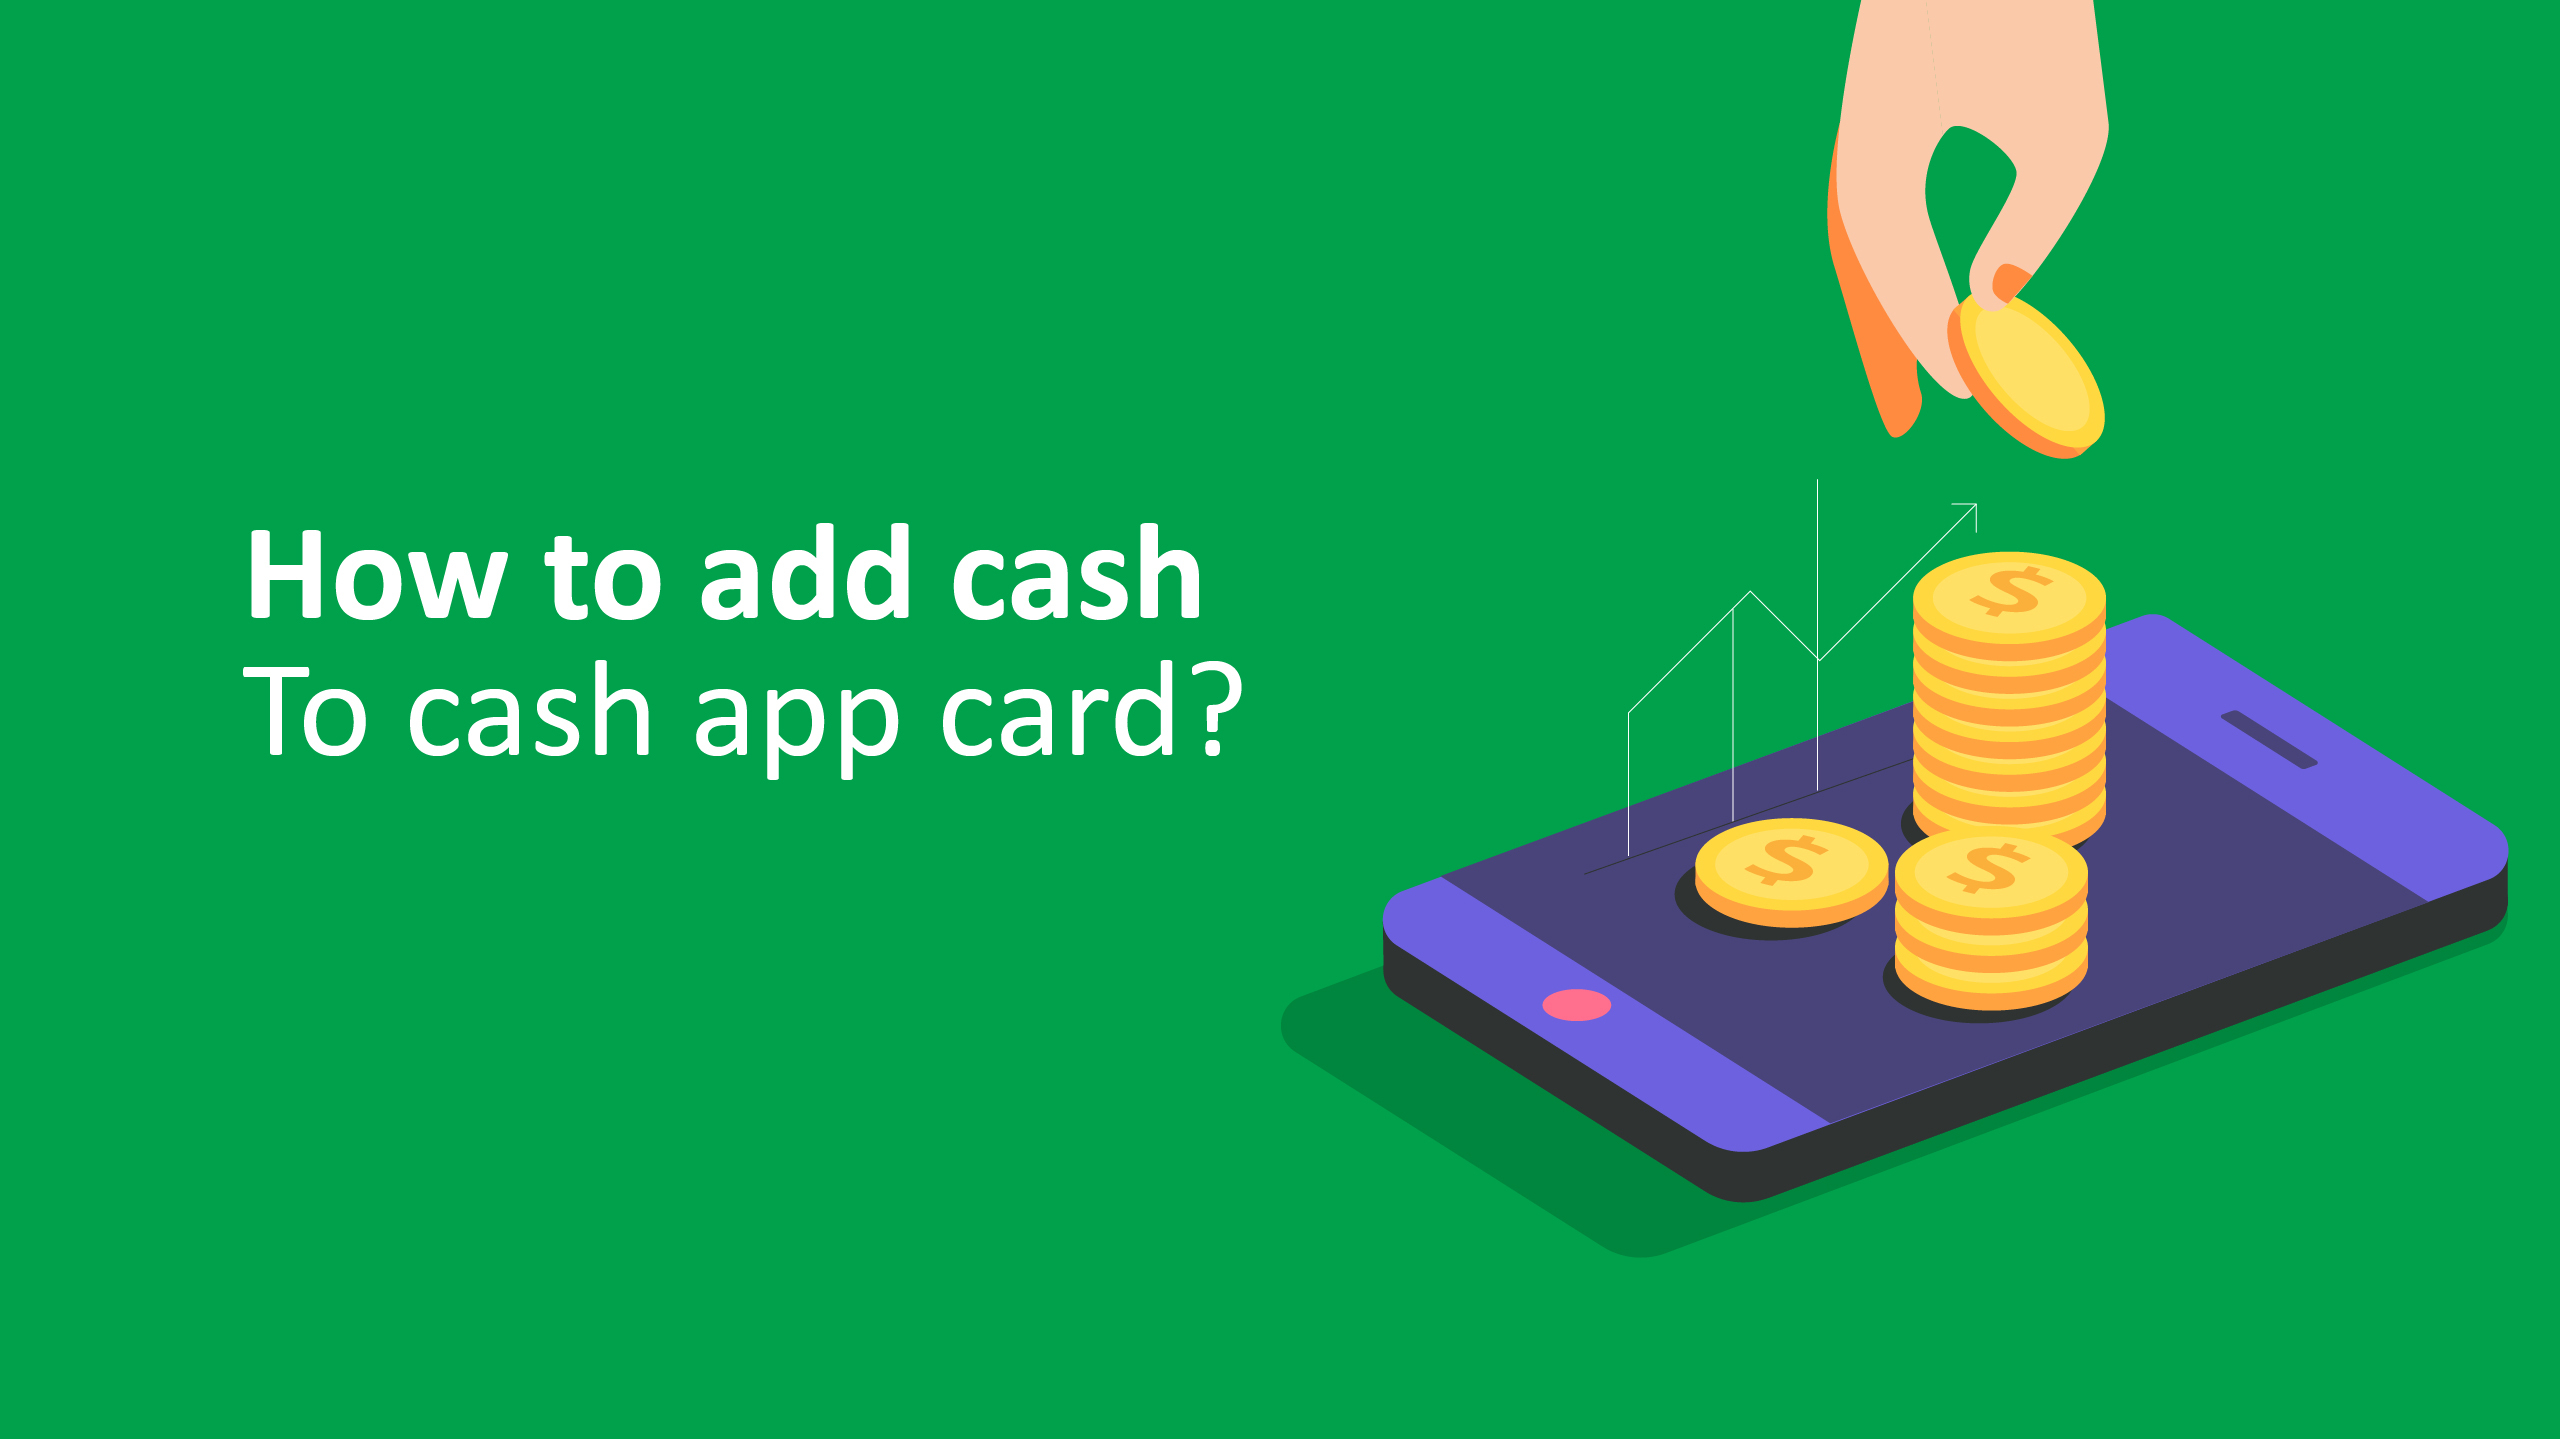 How To Add Cash To A Cash App Card